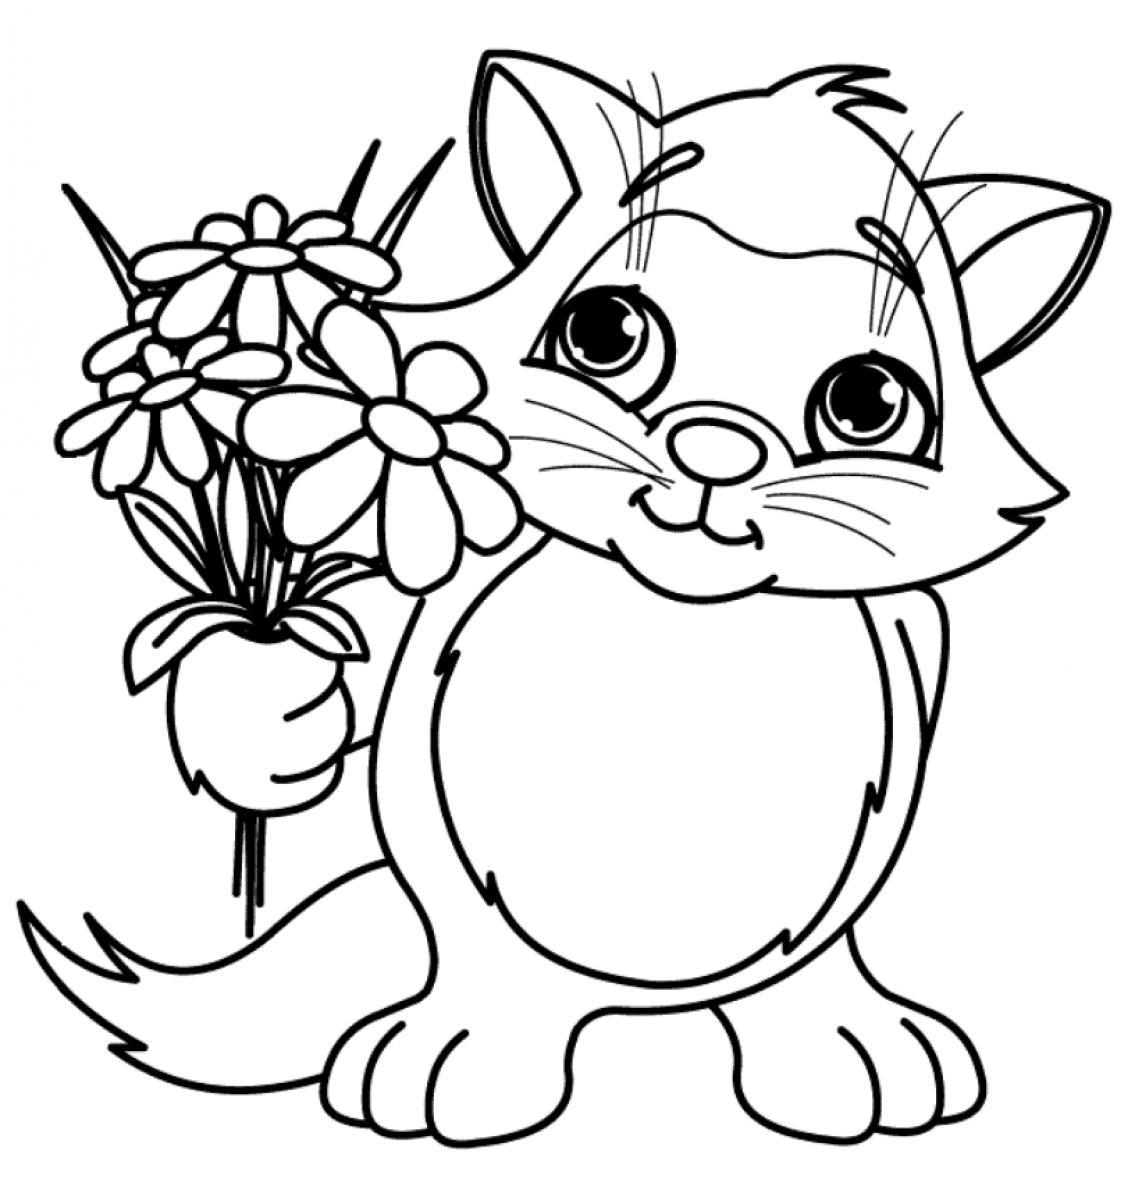 coloring pages about flowers flower coloring pages getcoloringpagescom pages flowers about coloring